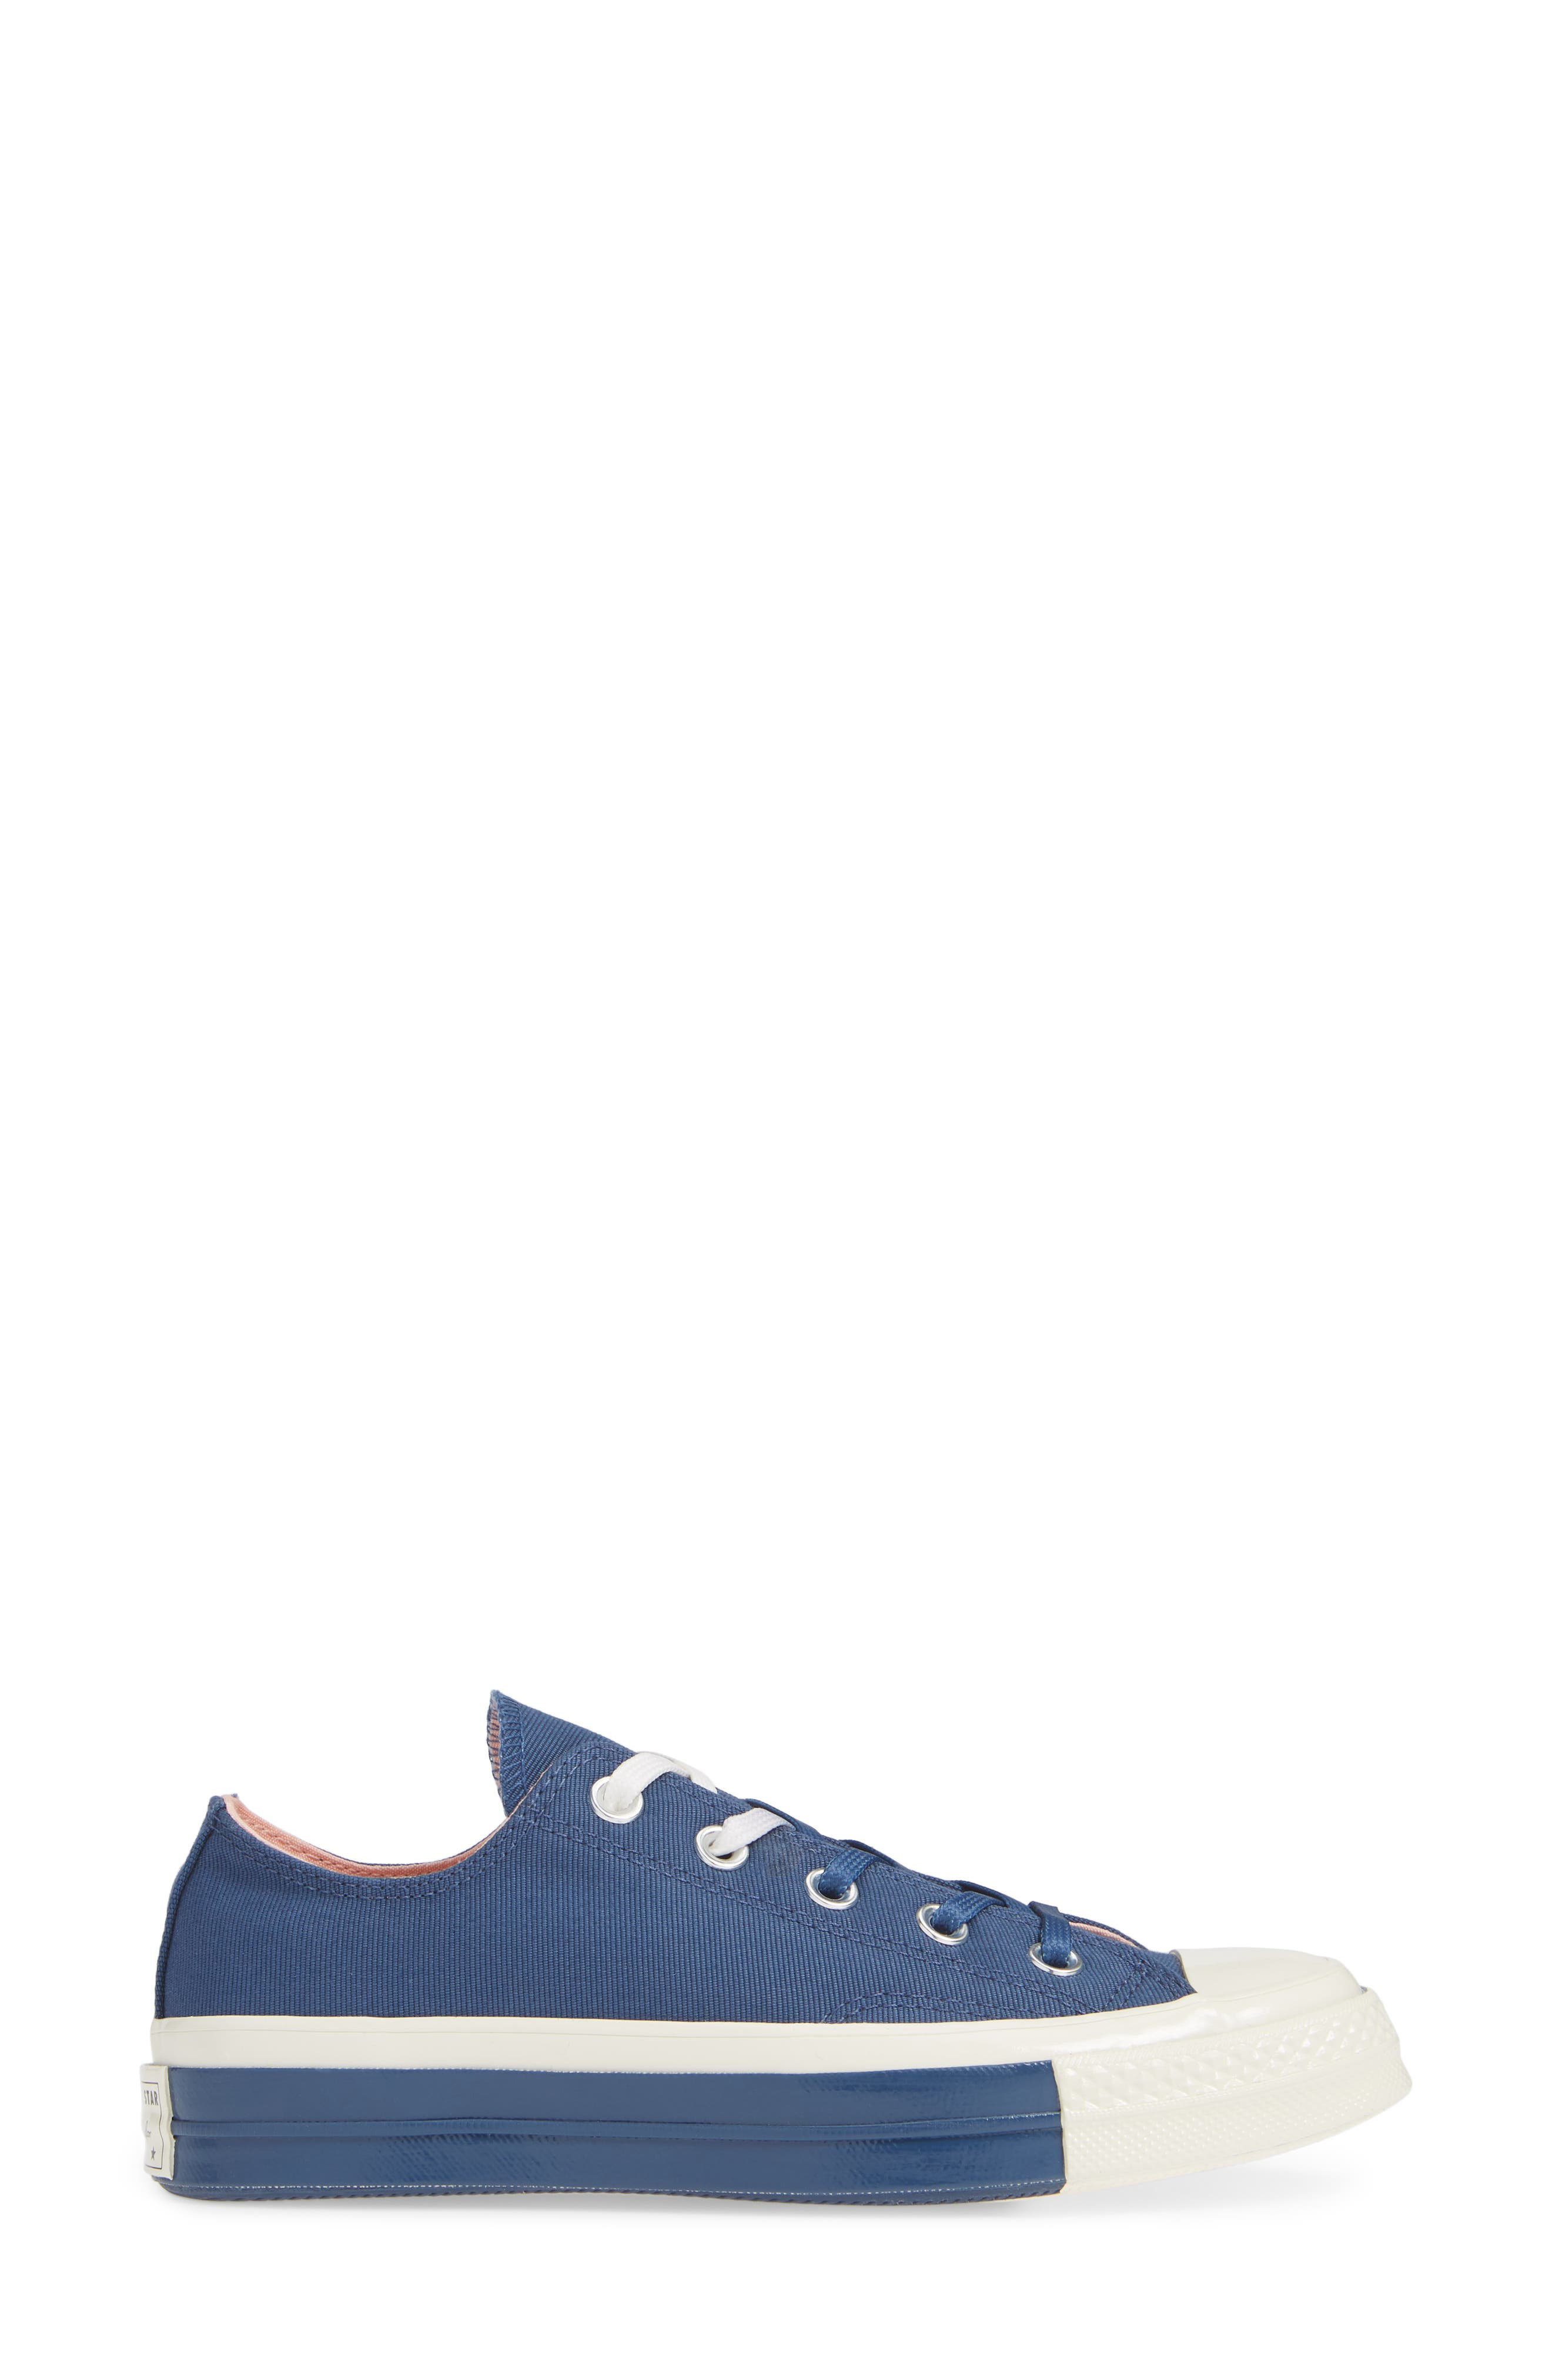 Chuck Taylor<sup>®</sup> All Star<sup>®</sup> 70 Colorblock Low Top Sneaker,                             Alternate thumbnail 3, color,                             MASON BLUE